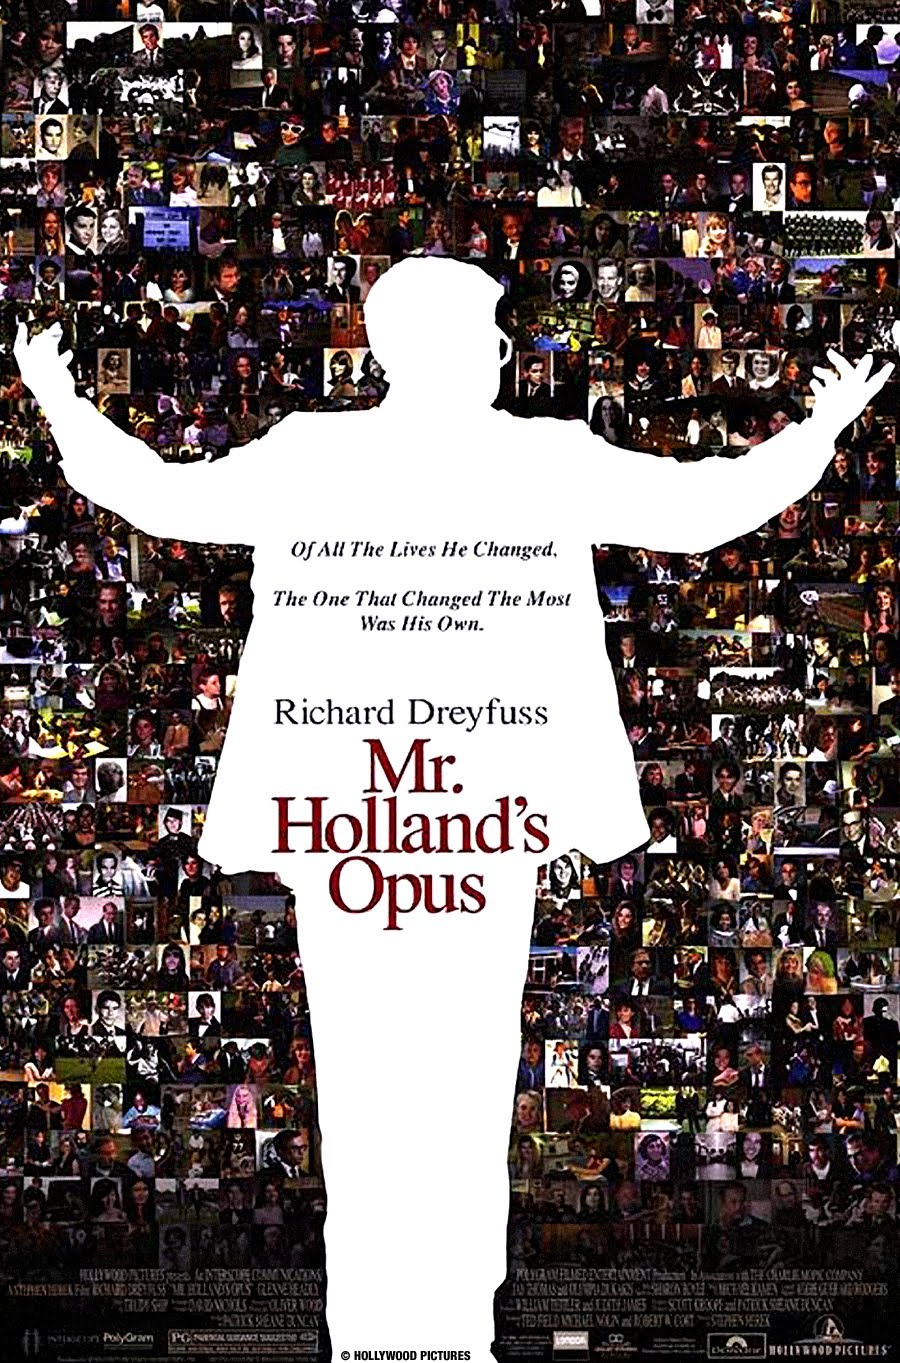 Libraries Rock Film Series - Mr. Holland's Opus